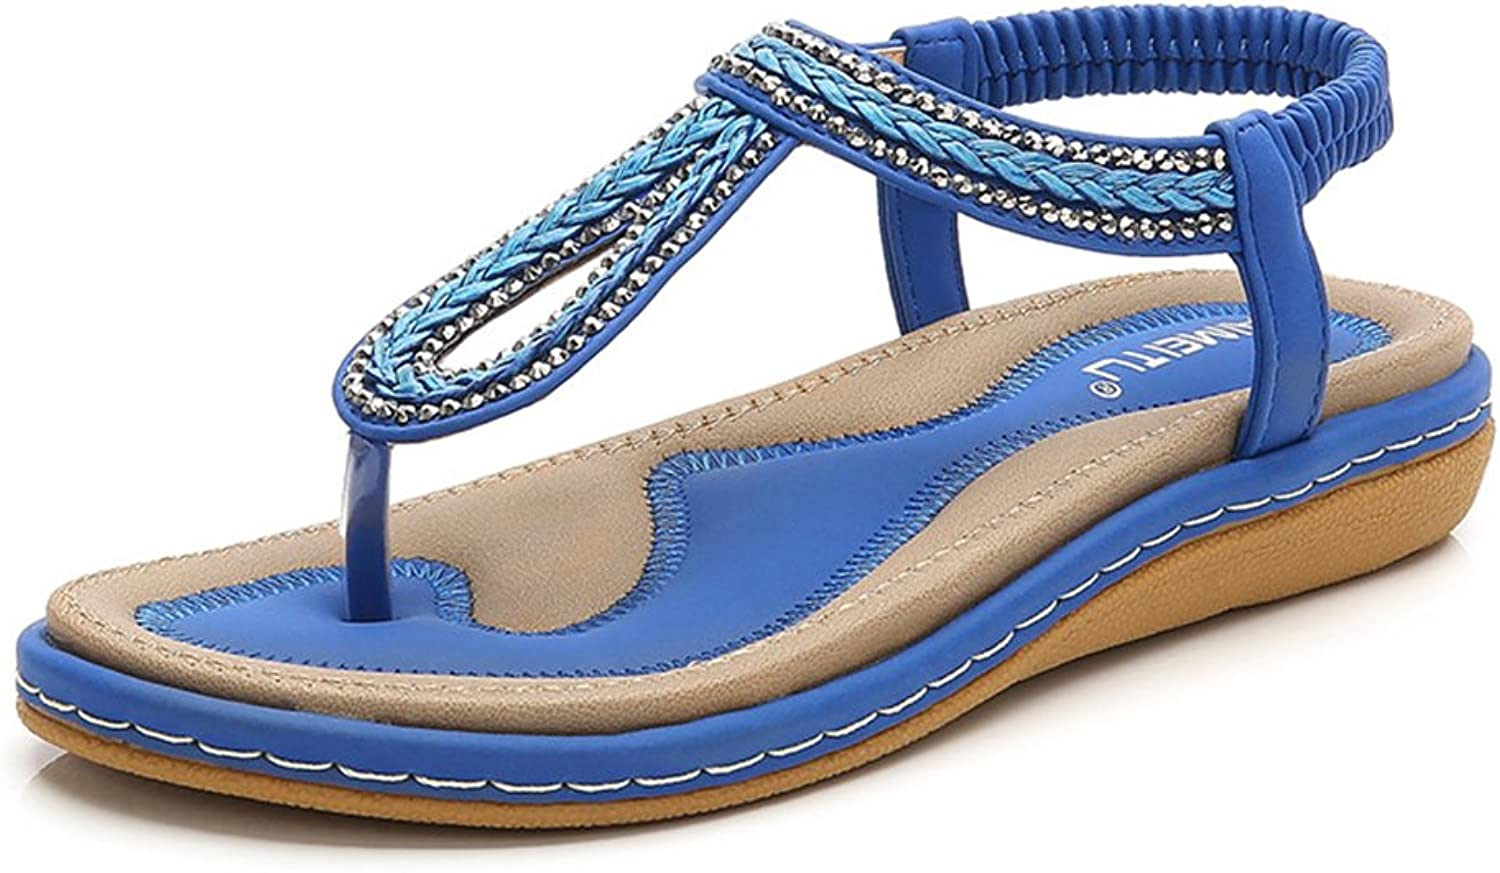 Tuoup Womens Leather Jeweled Fashion Thong Sandals Sandles